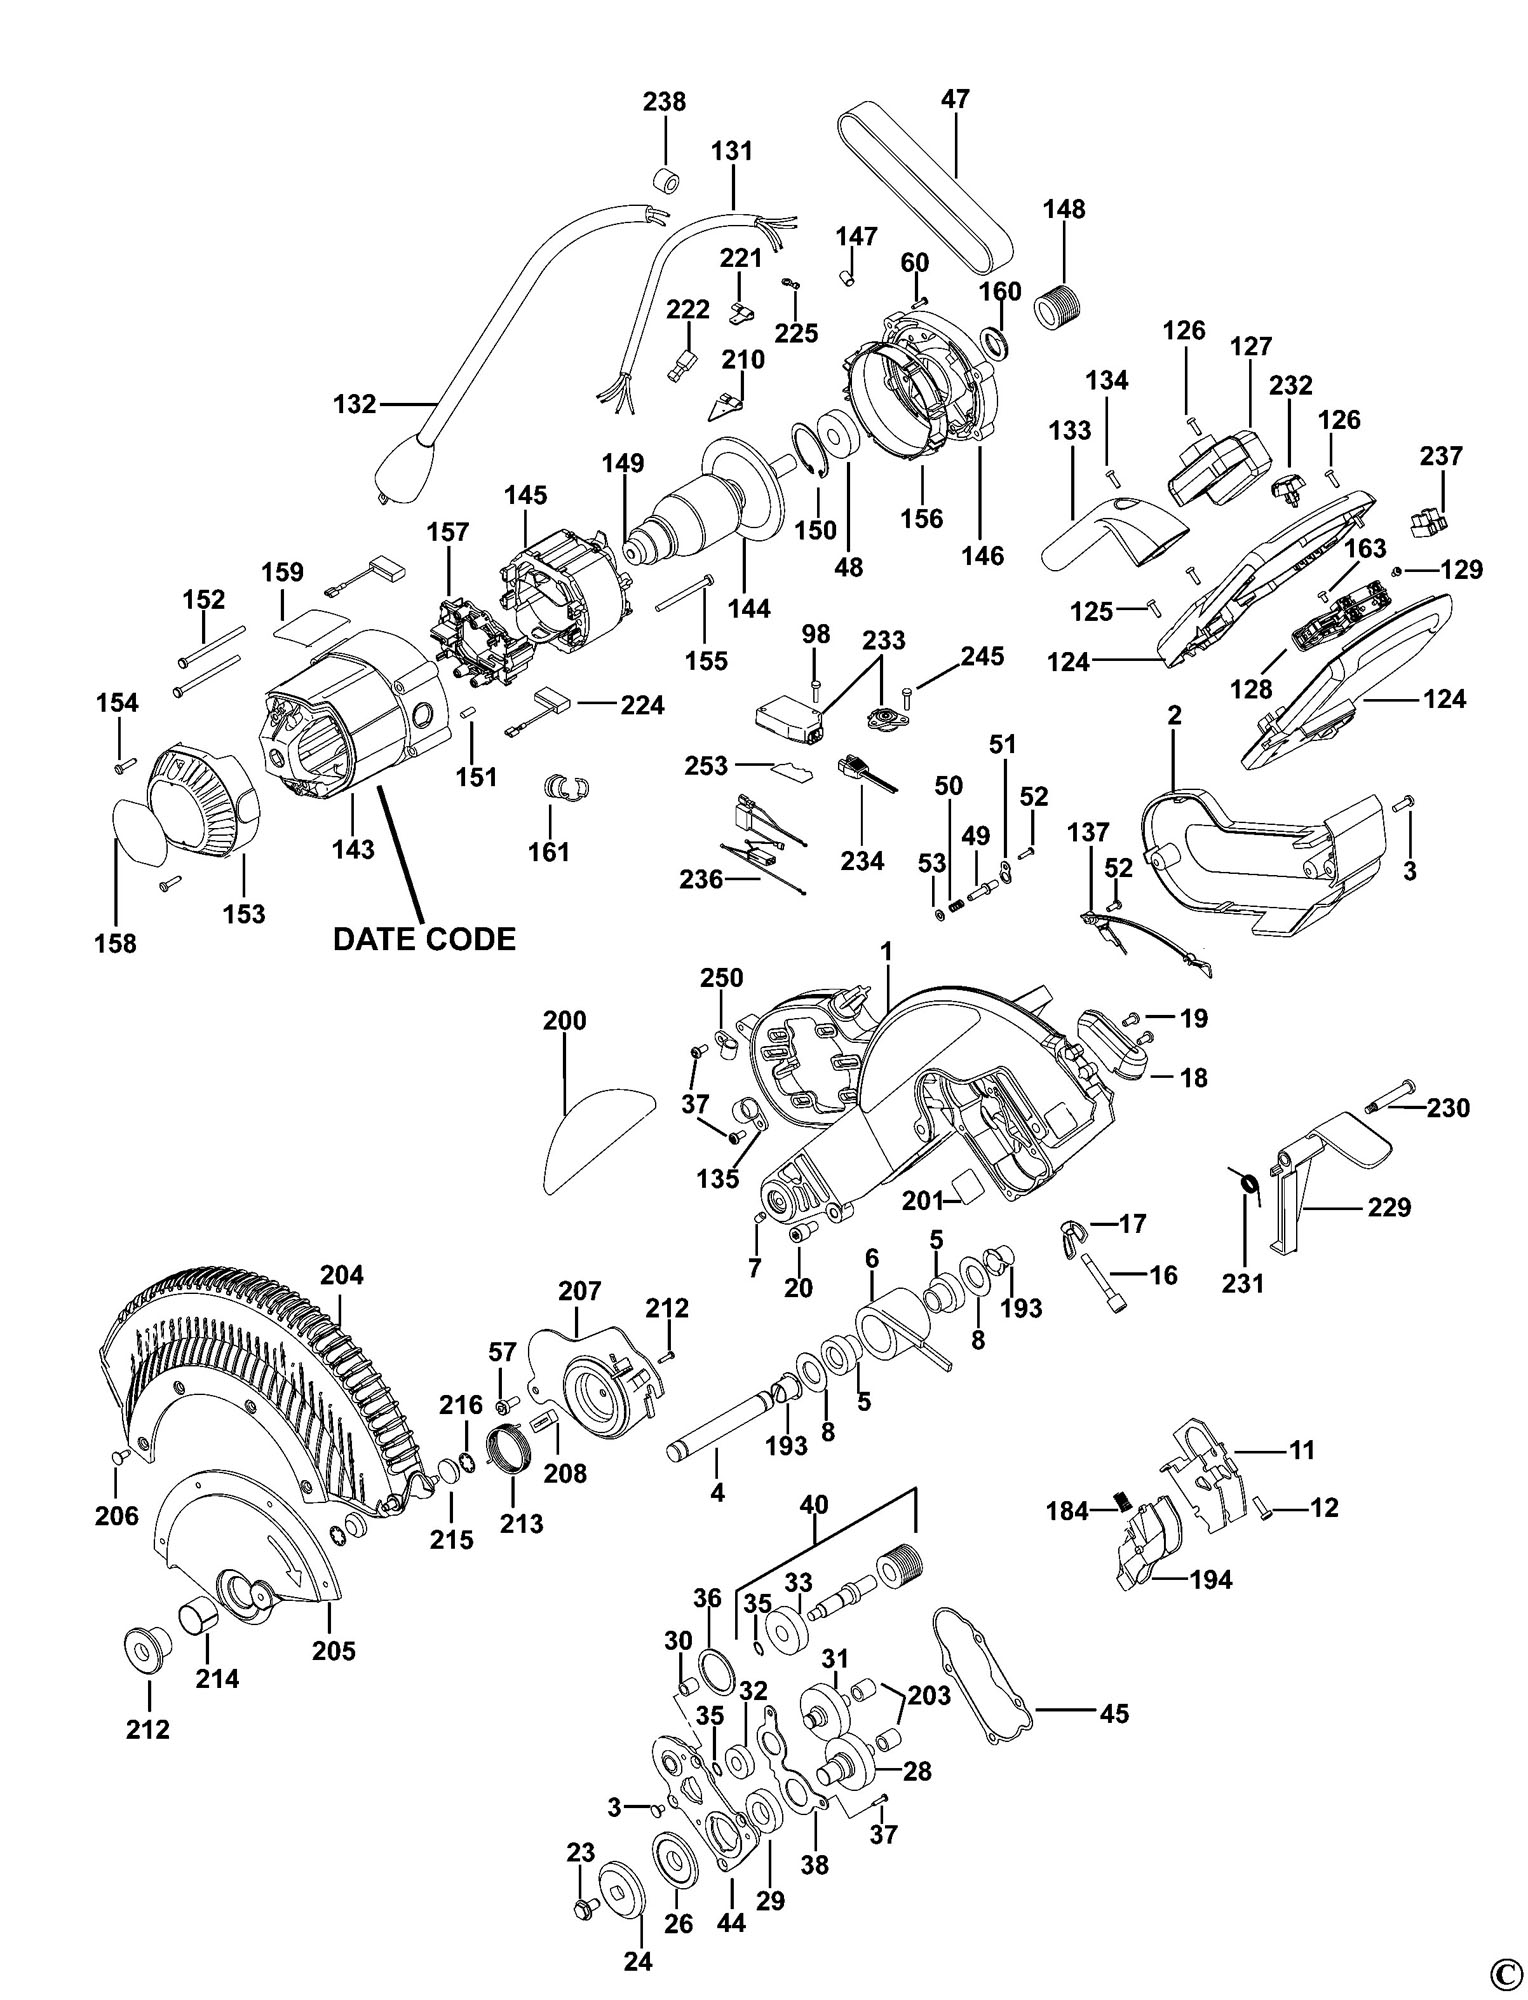 dewalt saw parts diagram